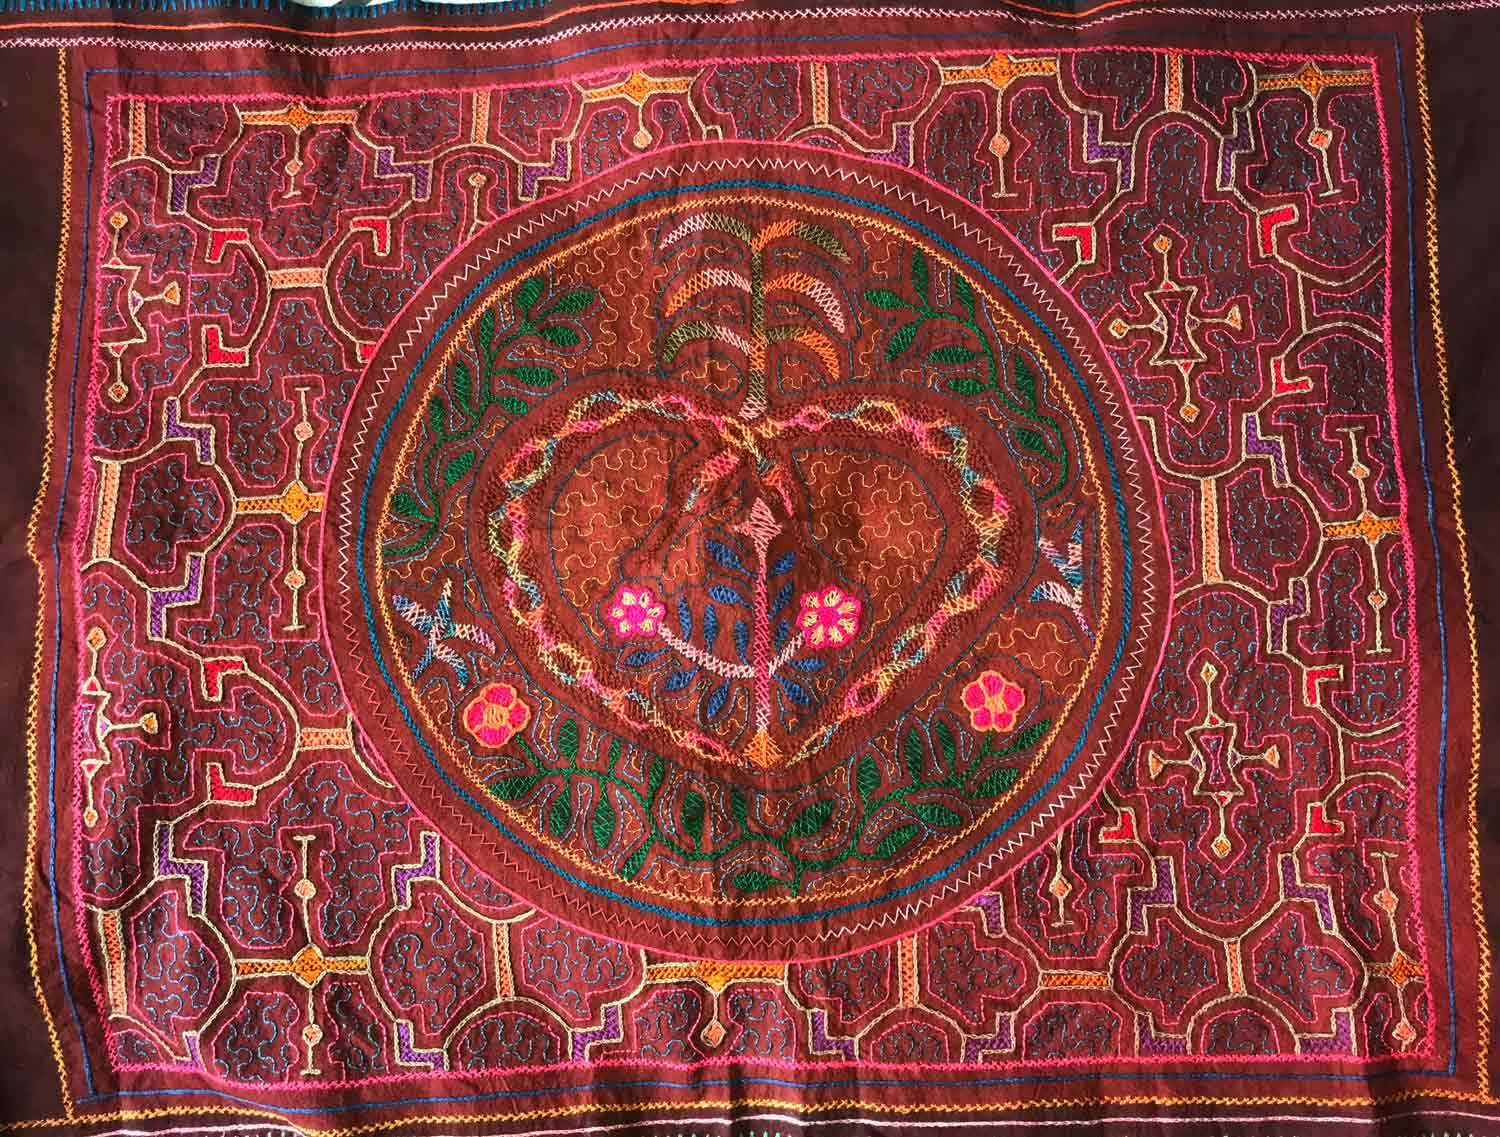 Amazonian Textile with Healing Design created by a Shipibo 12 year old girl.